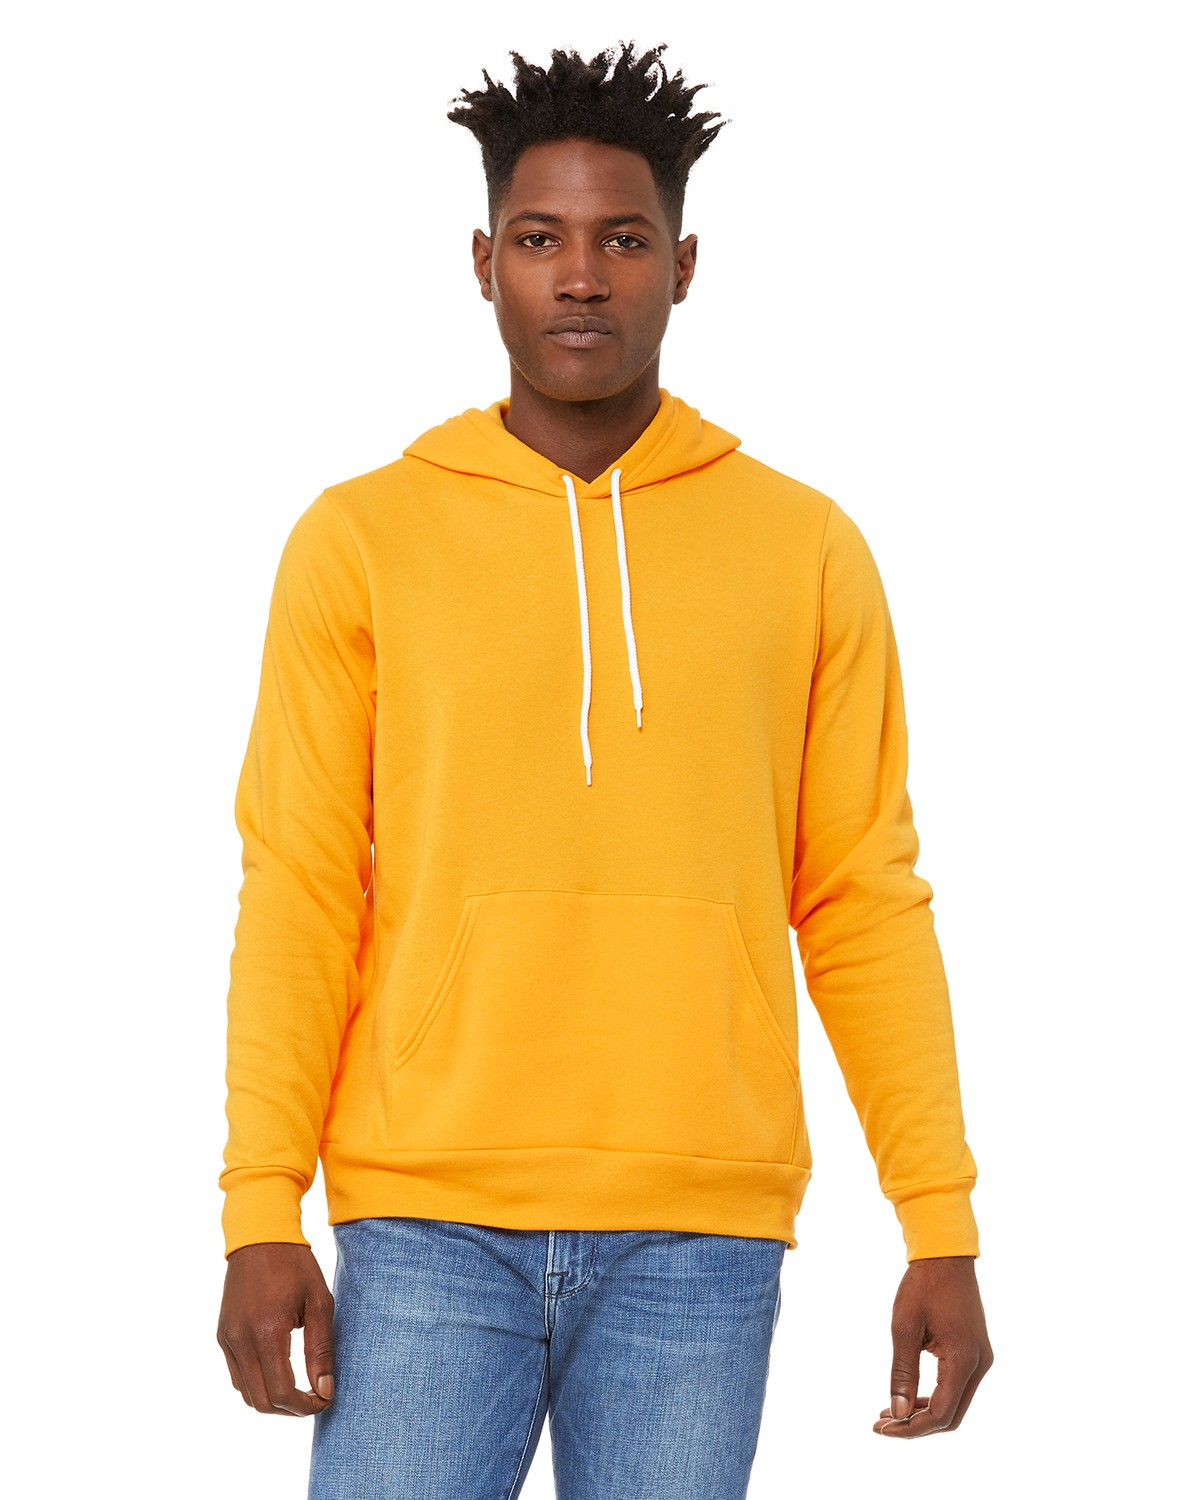 Bella + Canvas 3719 Poly Cotton Fleece Pullover Unisex Hoodie - Gold - XS from Bella + Canvas